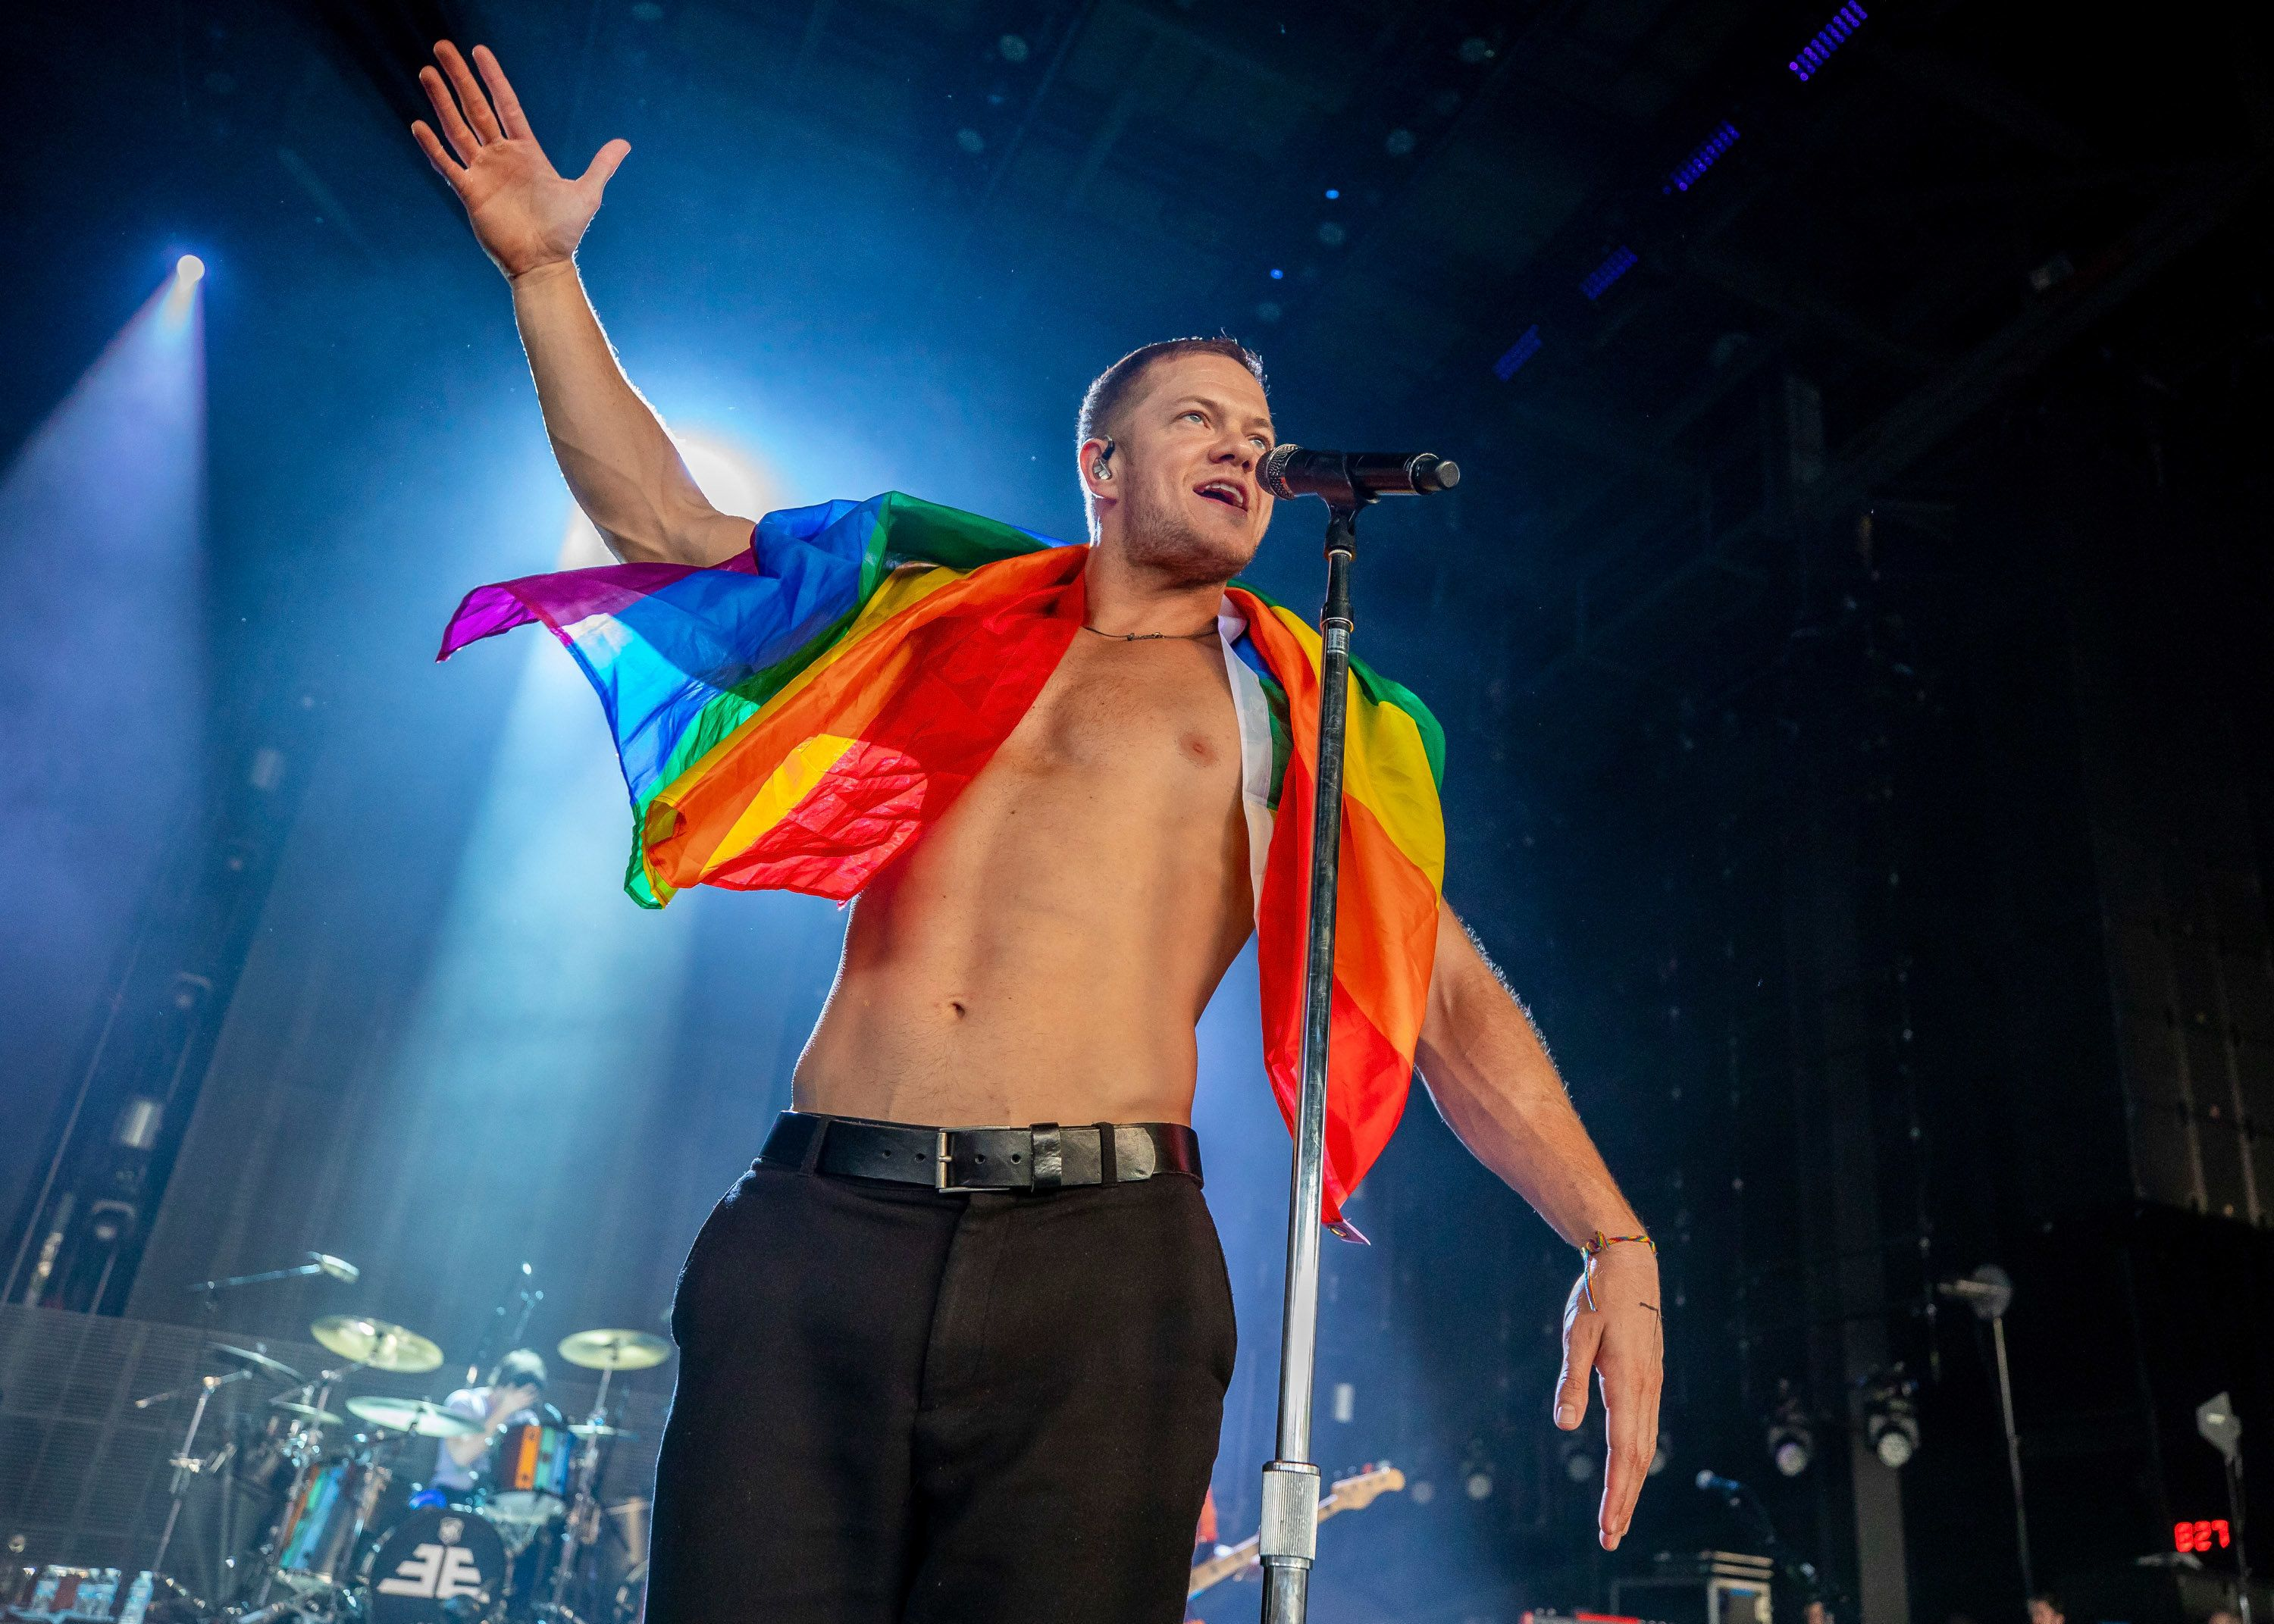 CLARKSTON, MI - JUNE 21:  Dan Reynolds of Imagine Dragons holds a gay pride flag during their Evolve World Tour 2018 at DTE Energy Music Theater on June 21, 2018 in Clarkston, Michigan.  (Photo by Scott Legato/Getty Images)